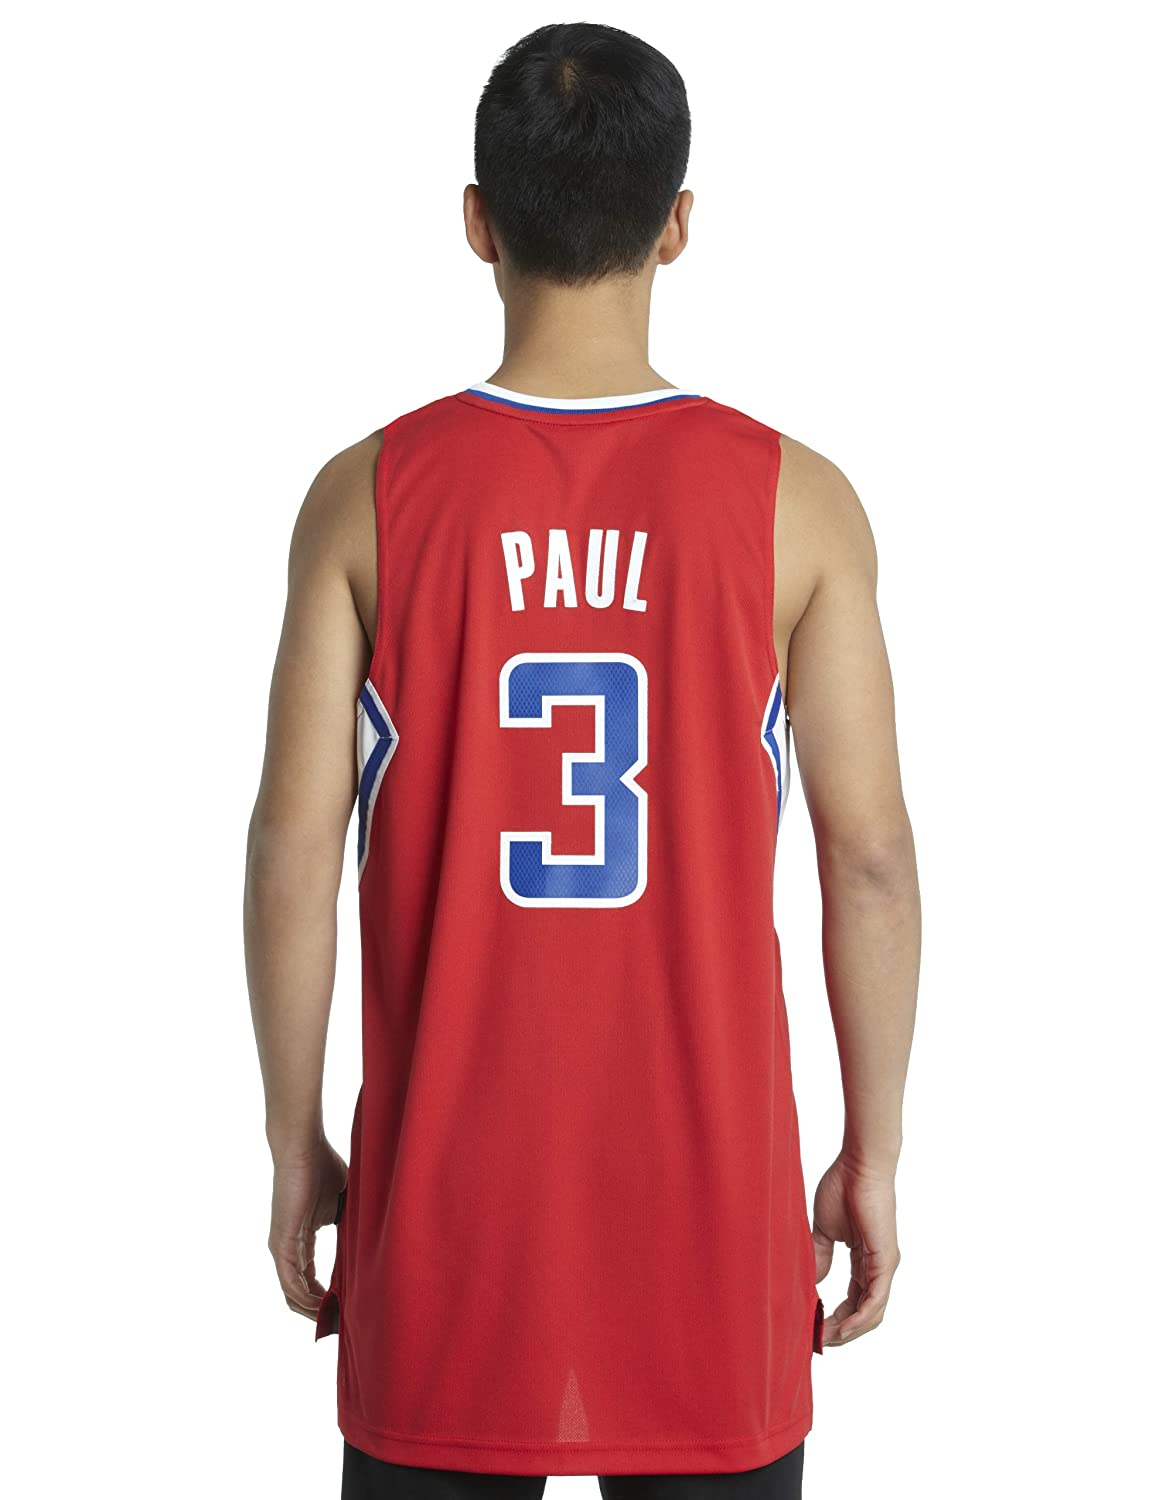 De Color Rojo Jersey de NBA Los Angeles Clippers Chris Paul # 3, Hombre, Los Angeles Clippers: Amazon.es: Deportes y aire libre